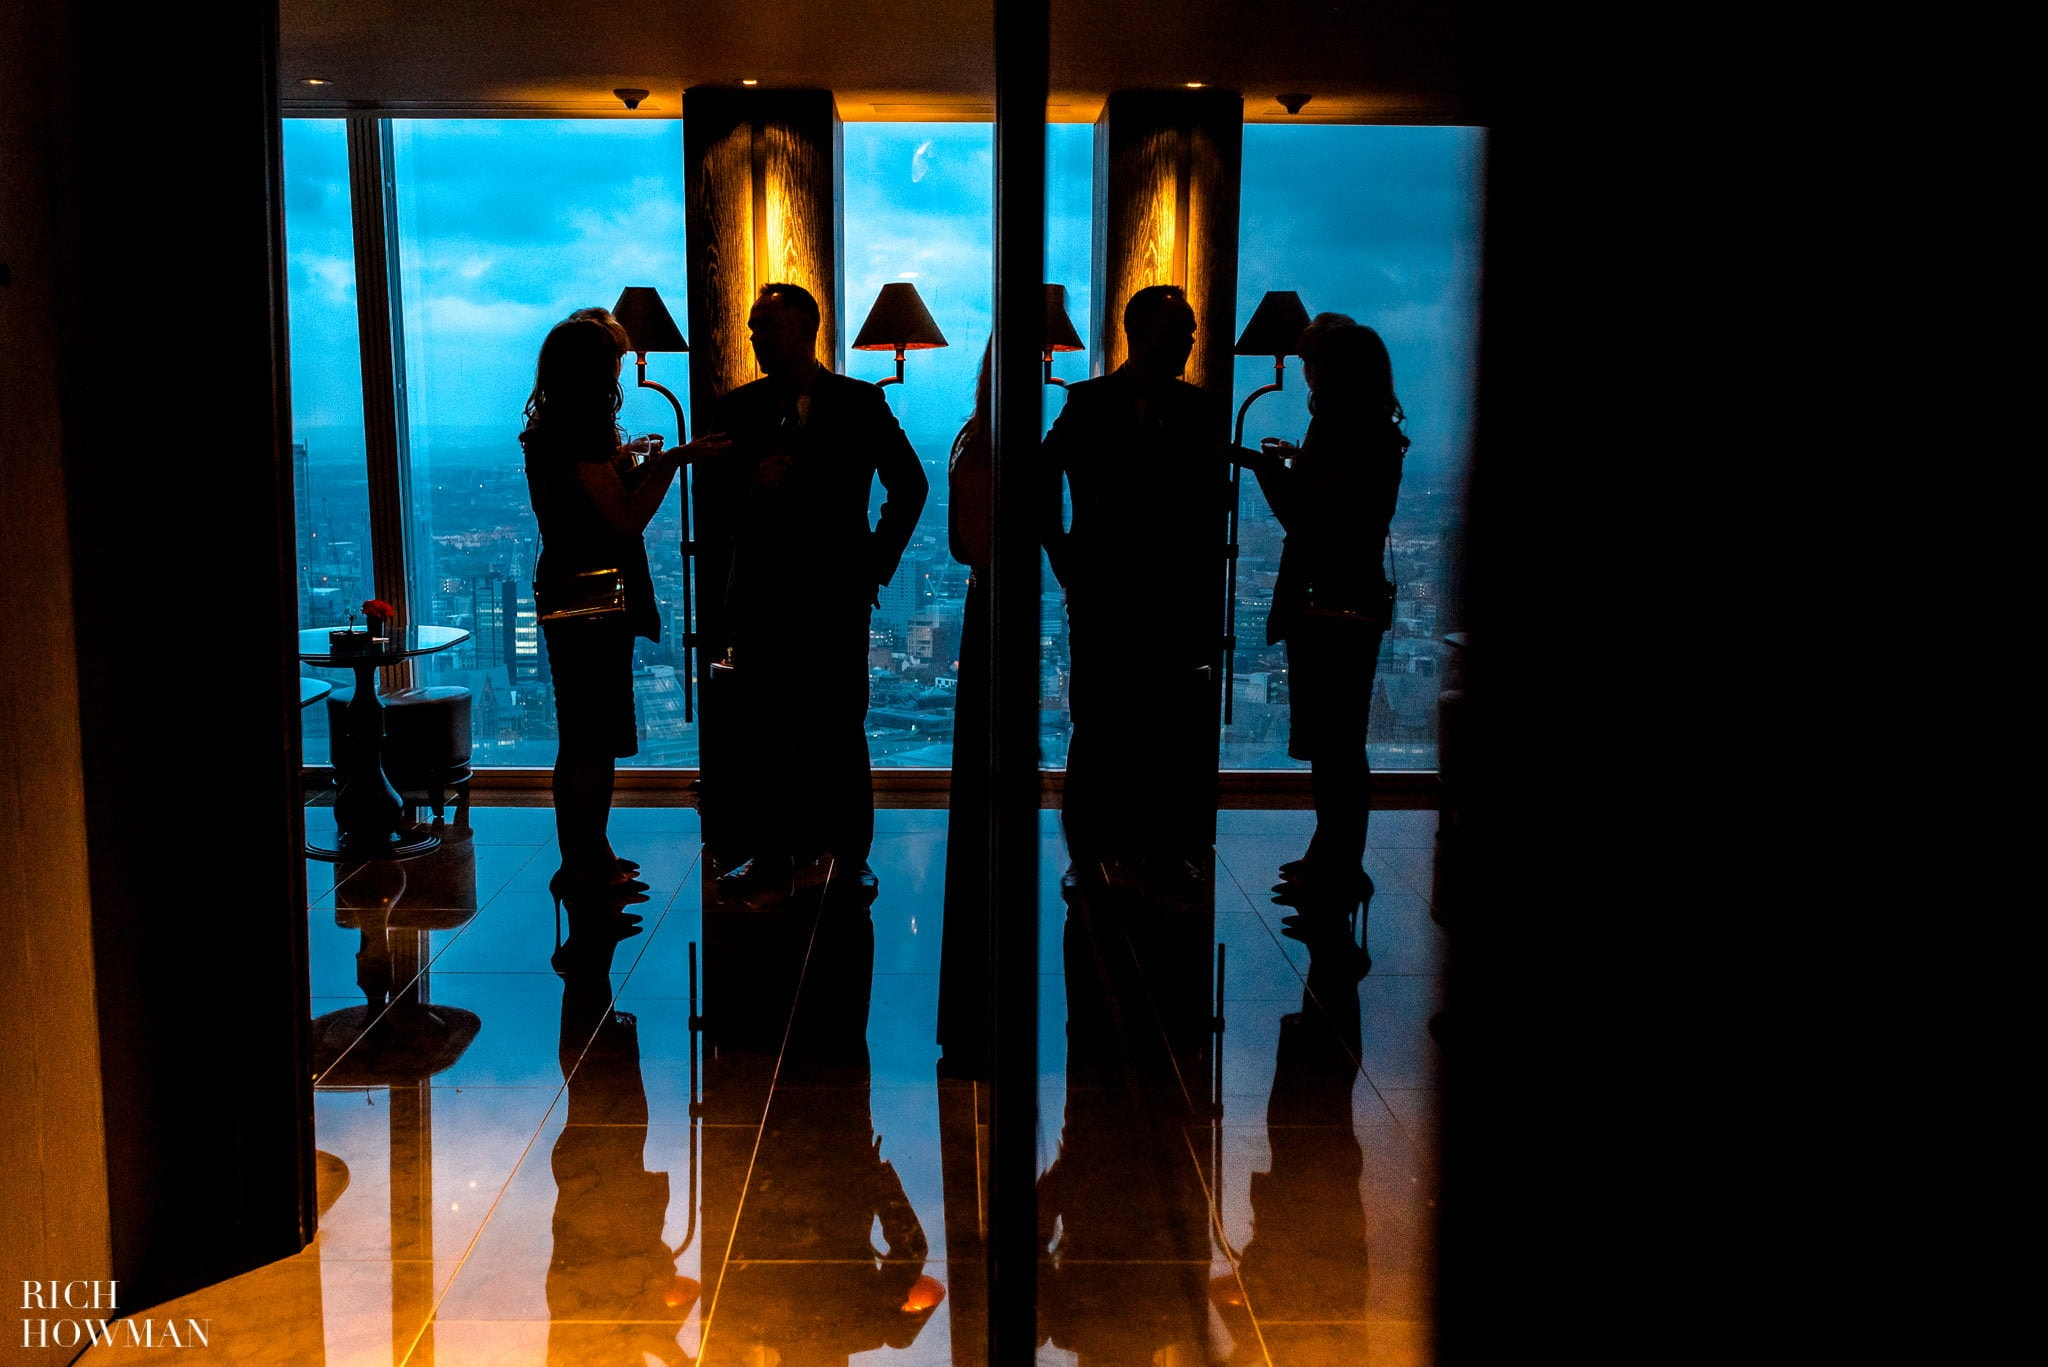 Wedding at The Shard, London | The Shard Wedding Photographer Rich Howman 5